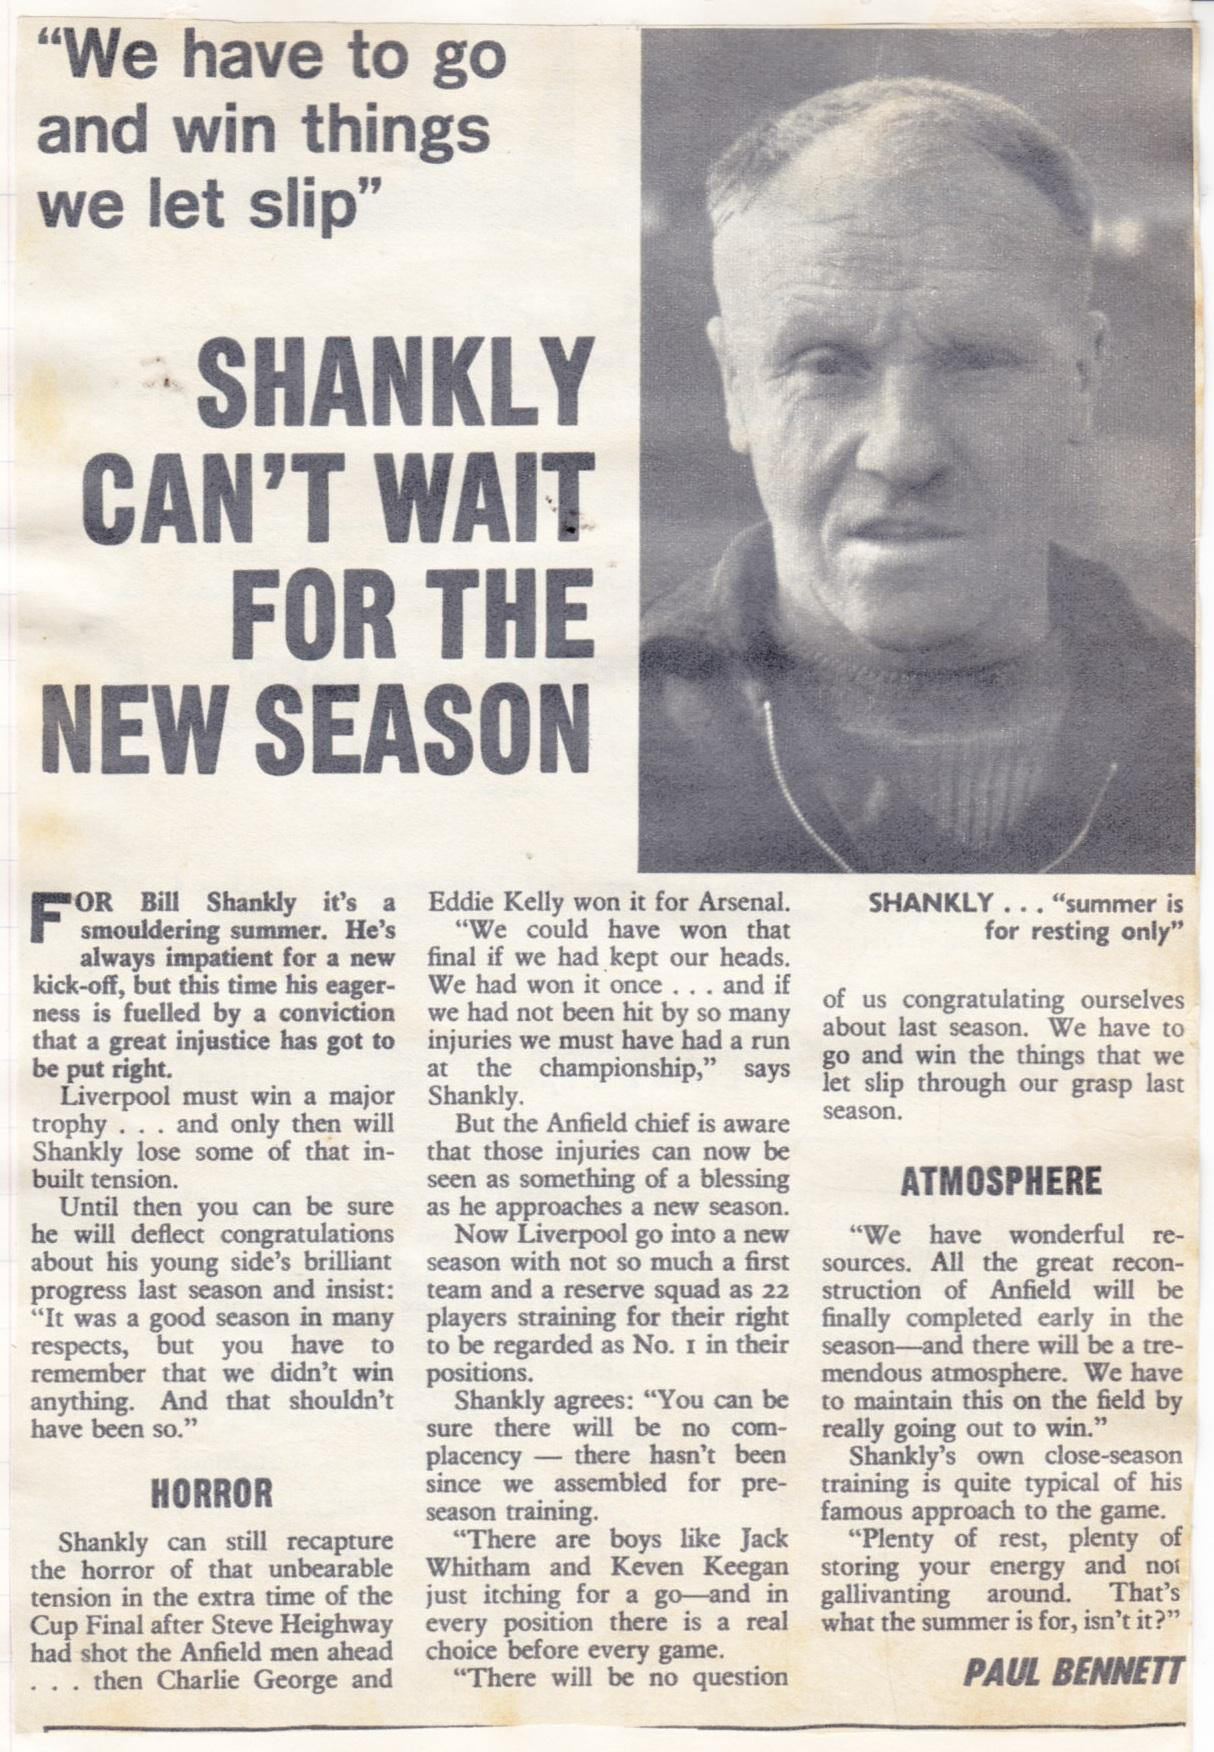 Shankly can't wait for the 1971/72 season